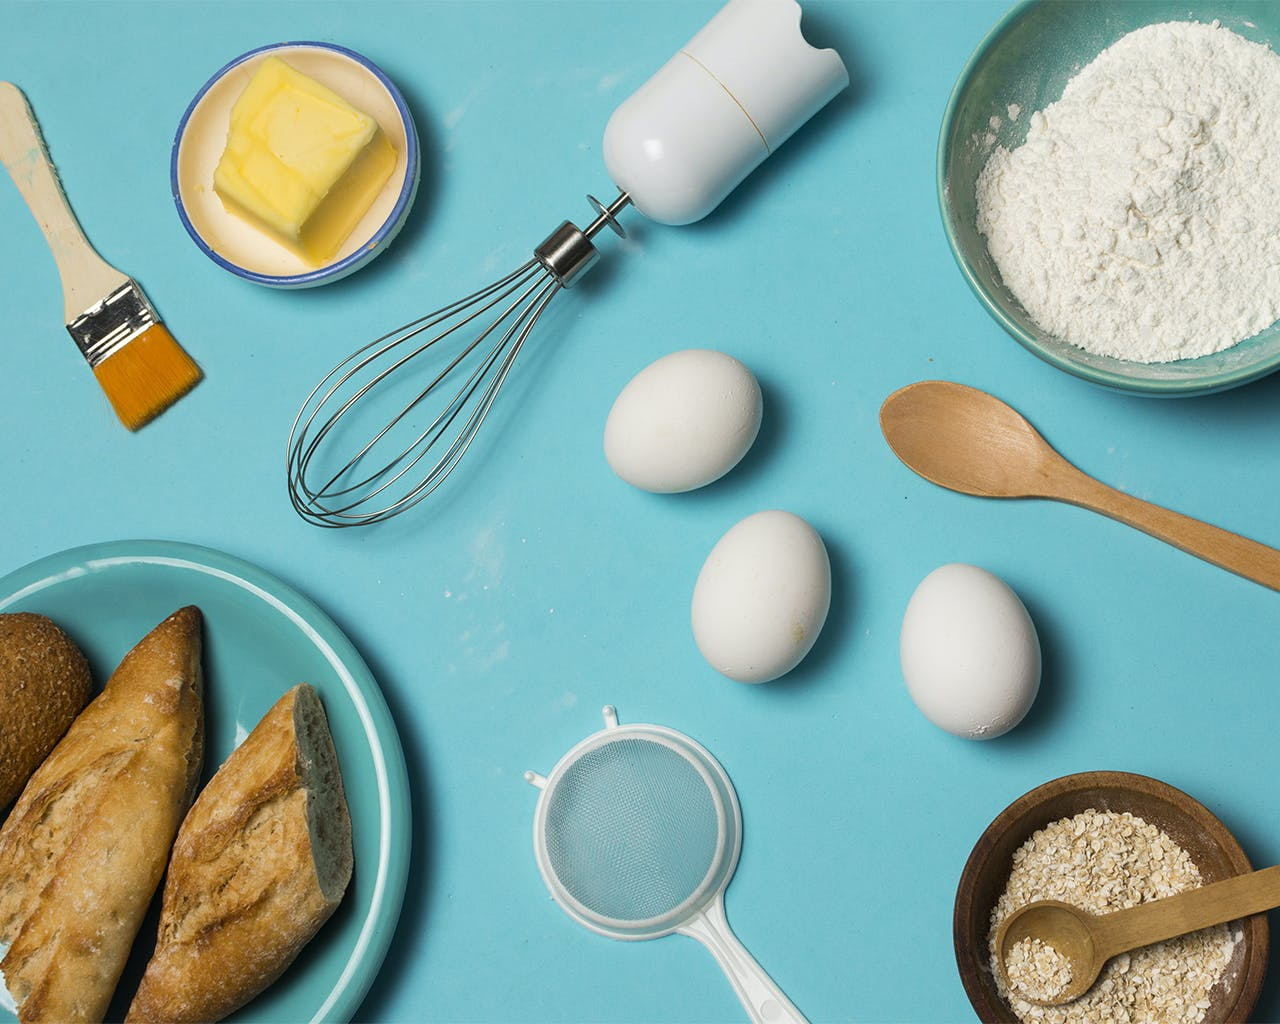 Ran Out Of Baking Supplies And Essentials? Here Are 7 Stores That Deliver